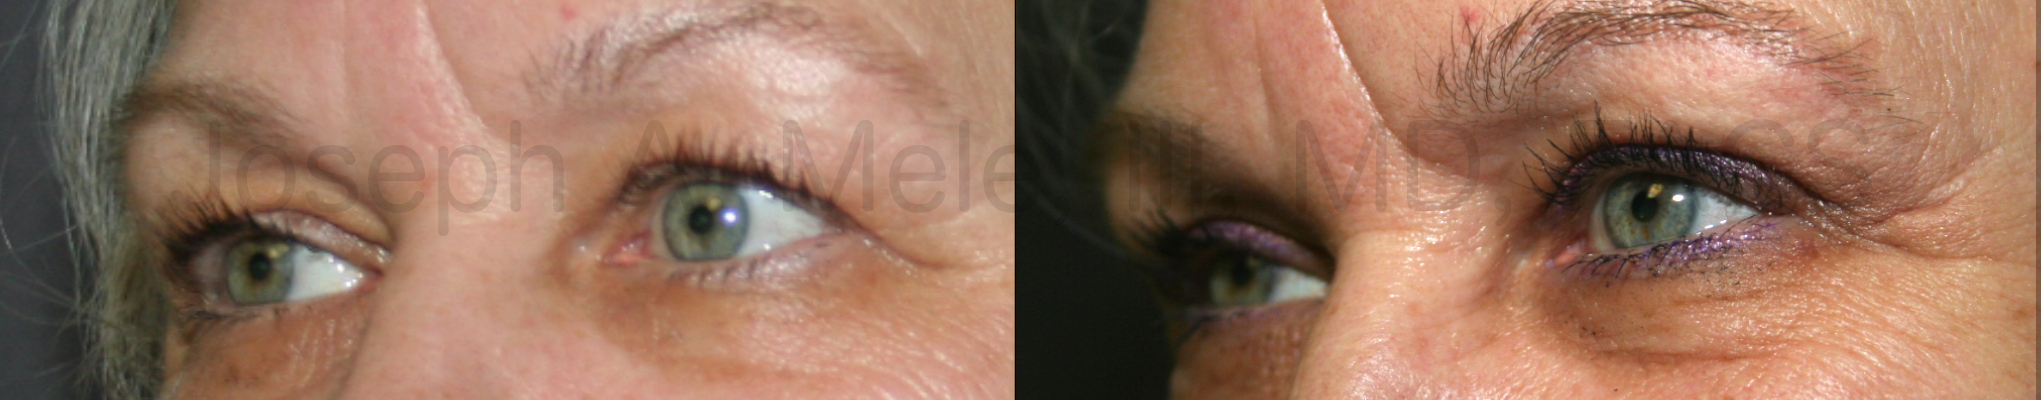 Eyelid Lift before and after pictures (Blepharoplasty)